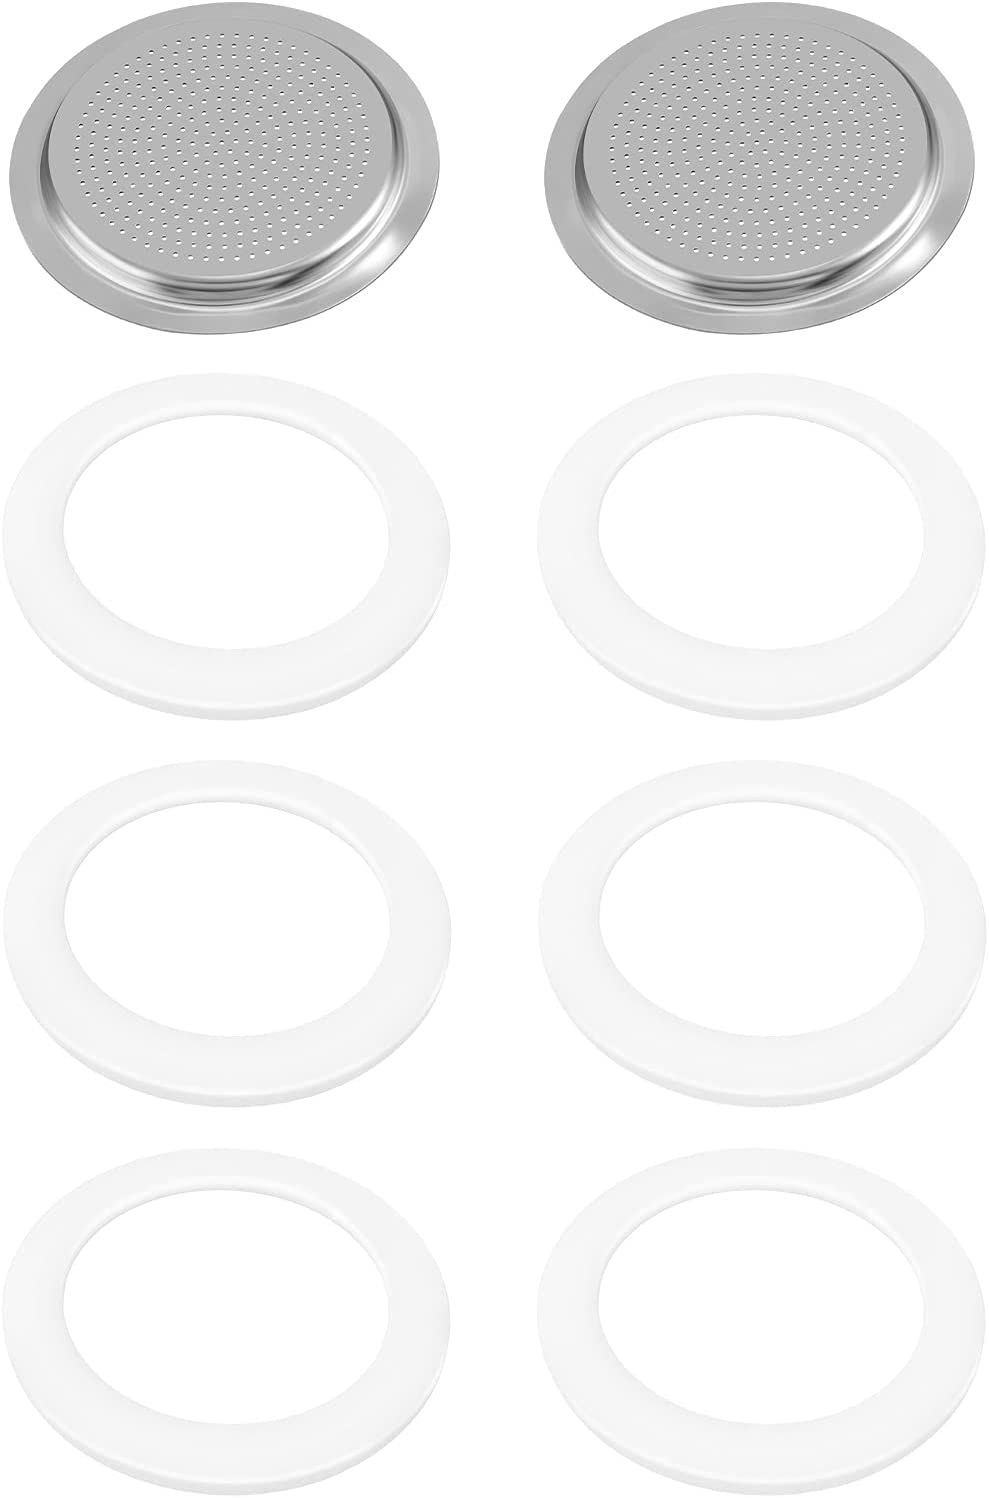 6 Max 41% OFF Pieces Silicone Gaskets Tulsa Mall with 2 Piece Gasket S Filter Stainless